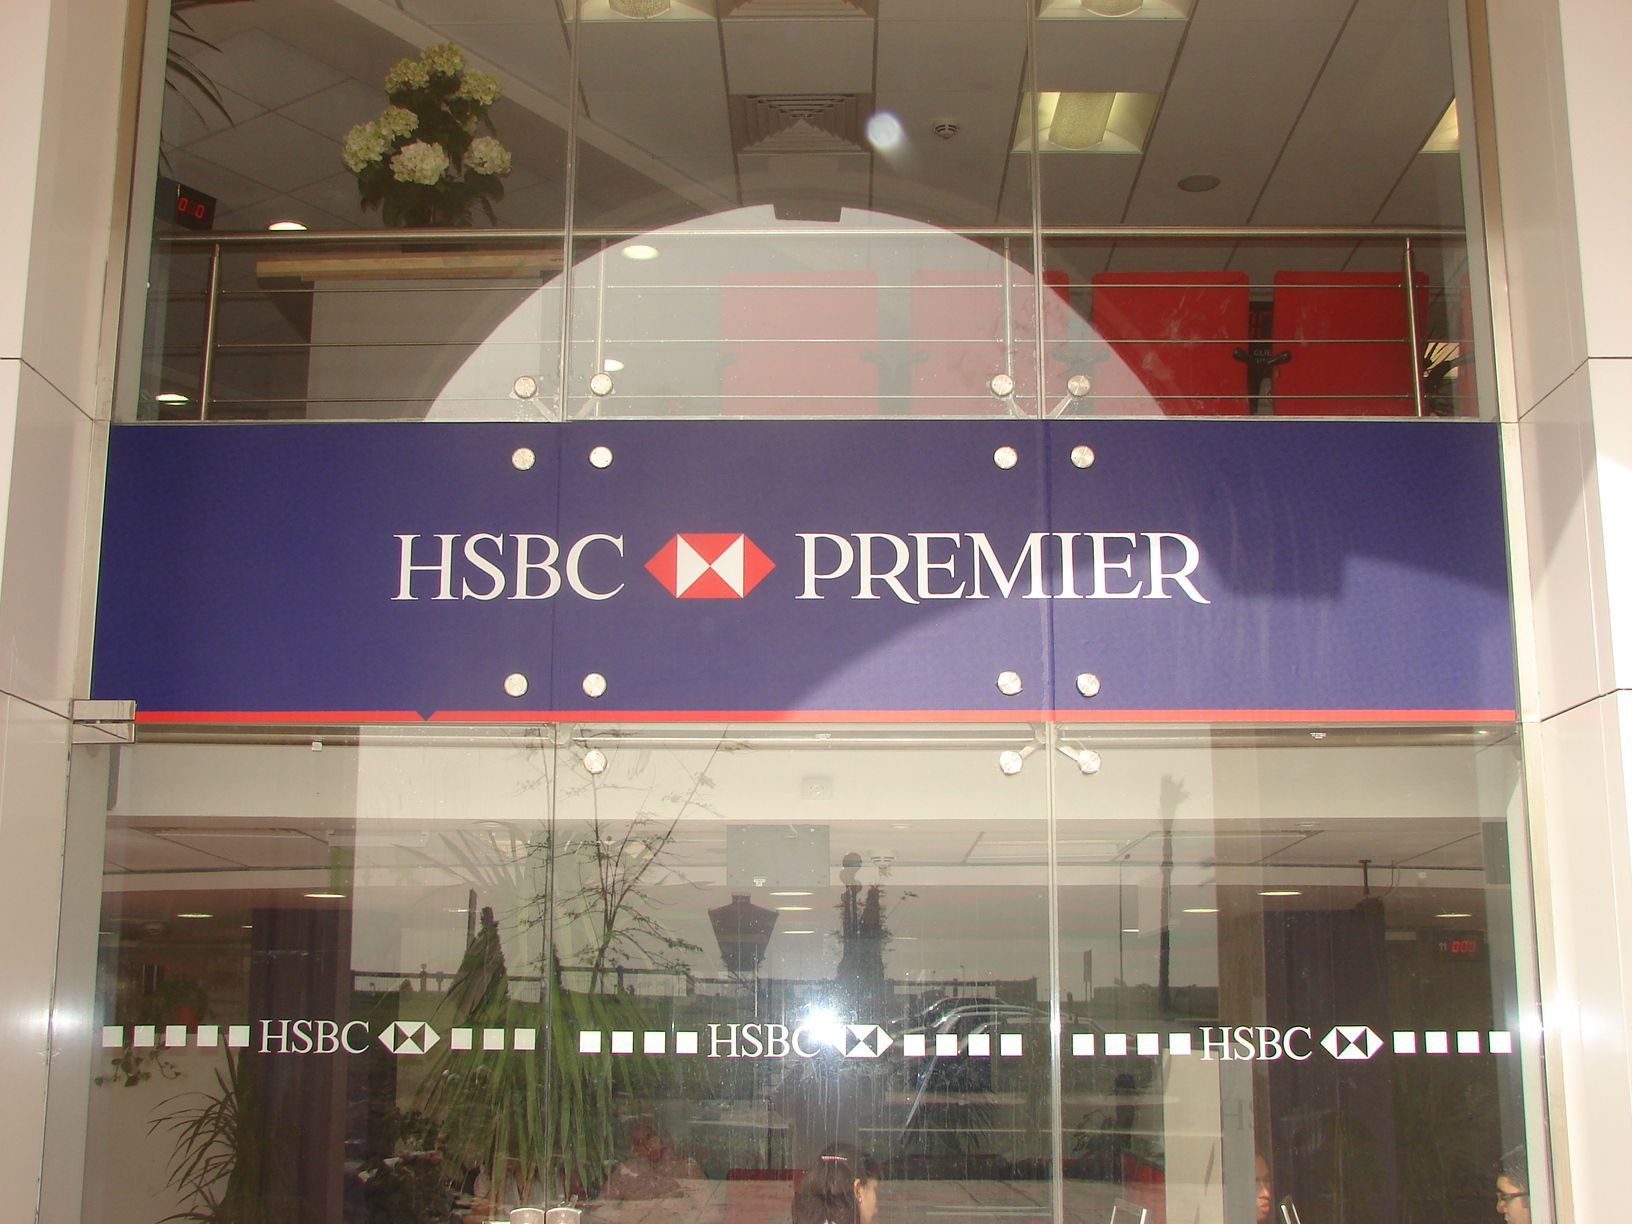 HSBC Premier Vinyl Poster Obour branch1 by Better & Partners'  Address : 55 Shehab St. Mohandessin, Gîza, Egypt, 123456 Phone : + 20 2 3303 7199  e-mail: info@betterandpartners.net